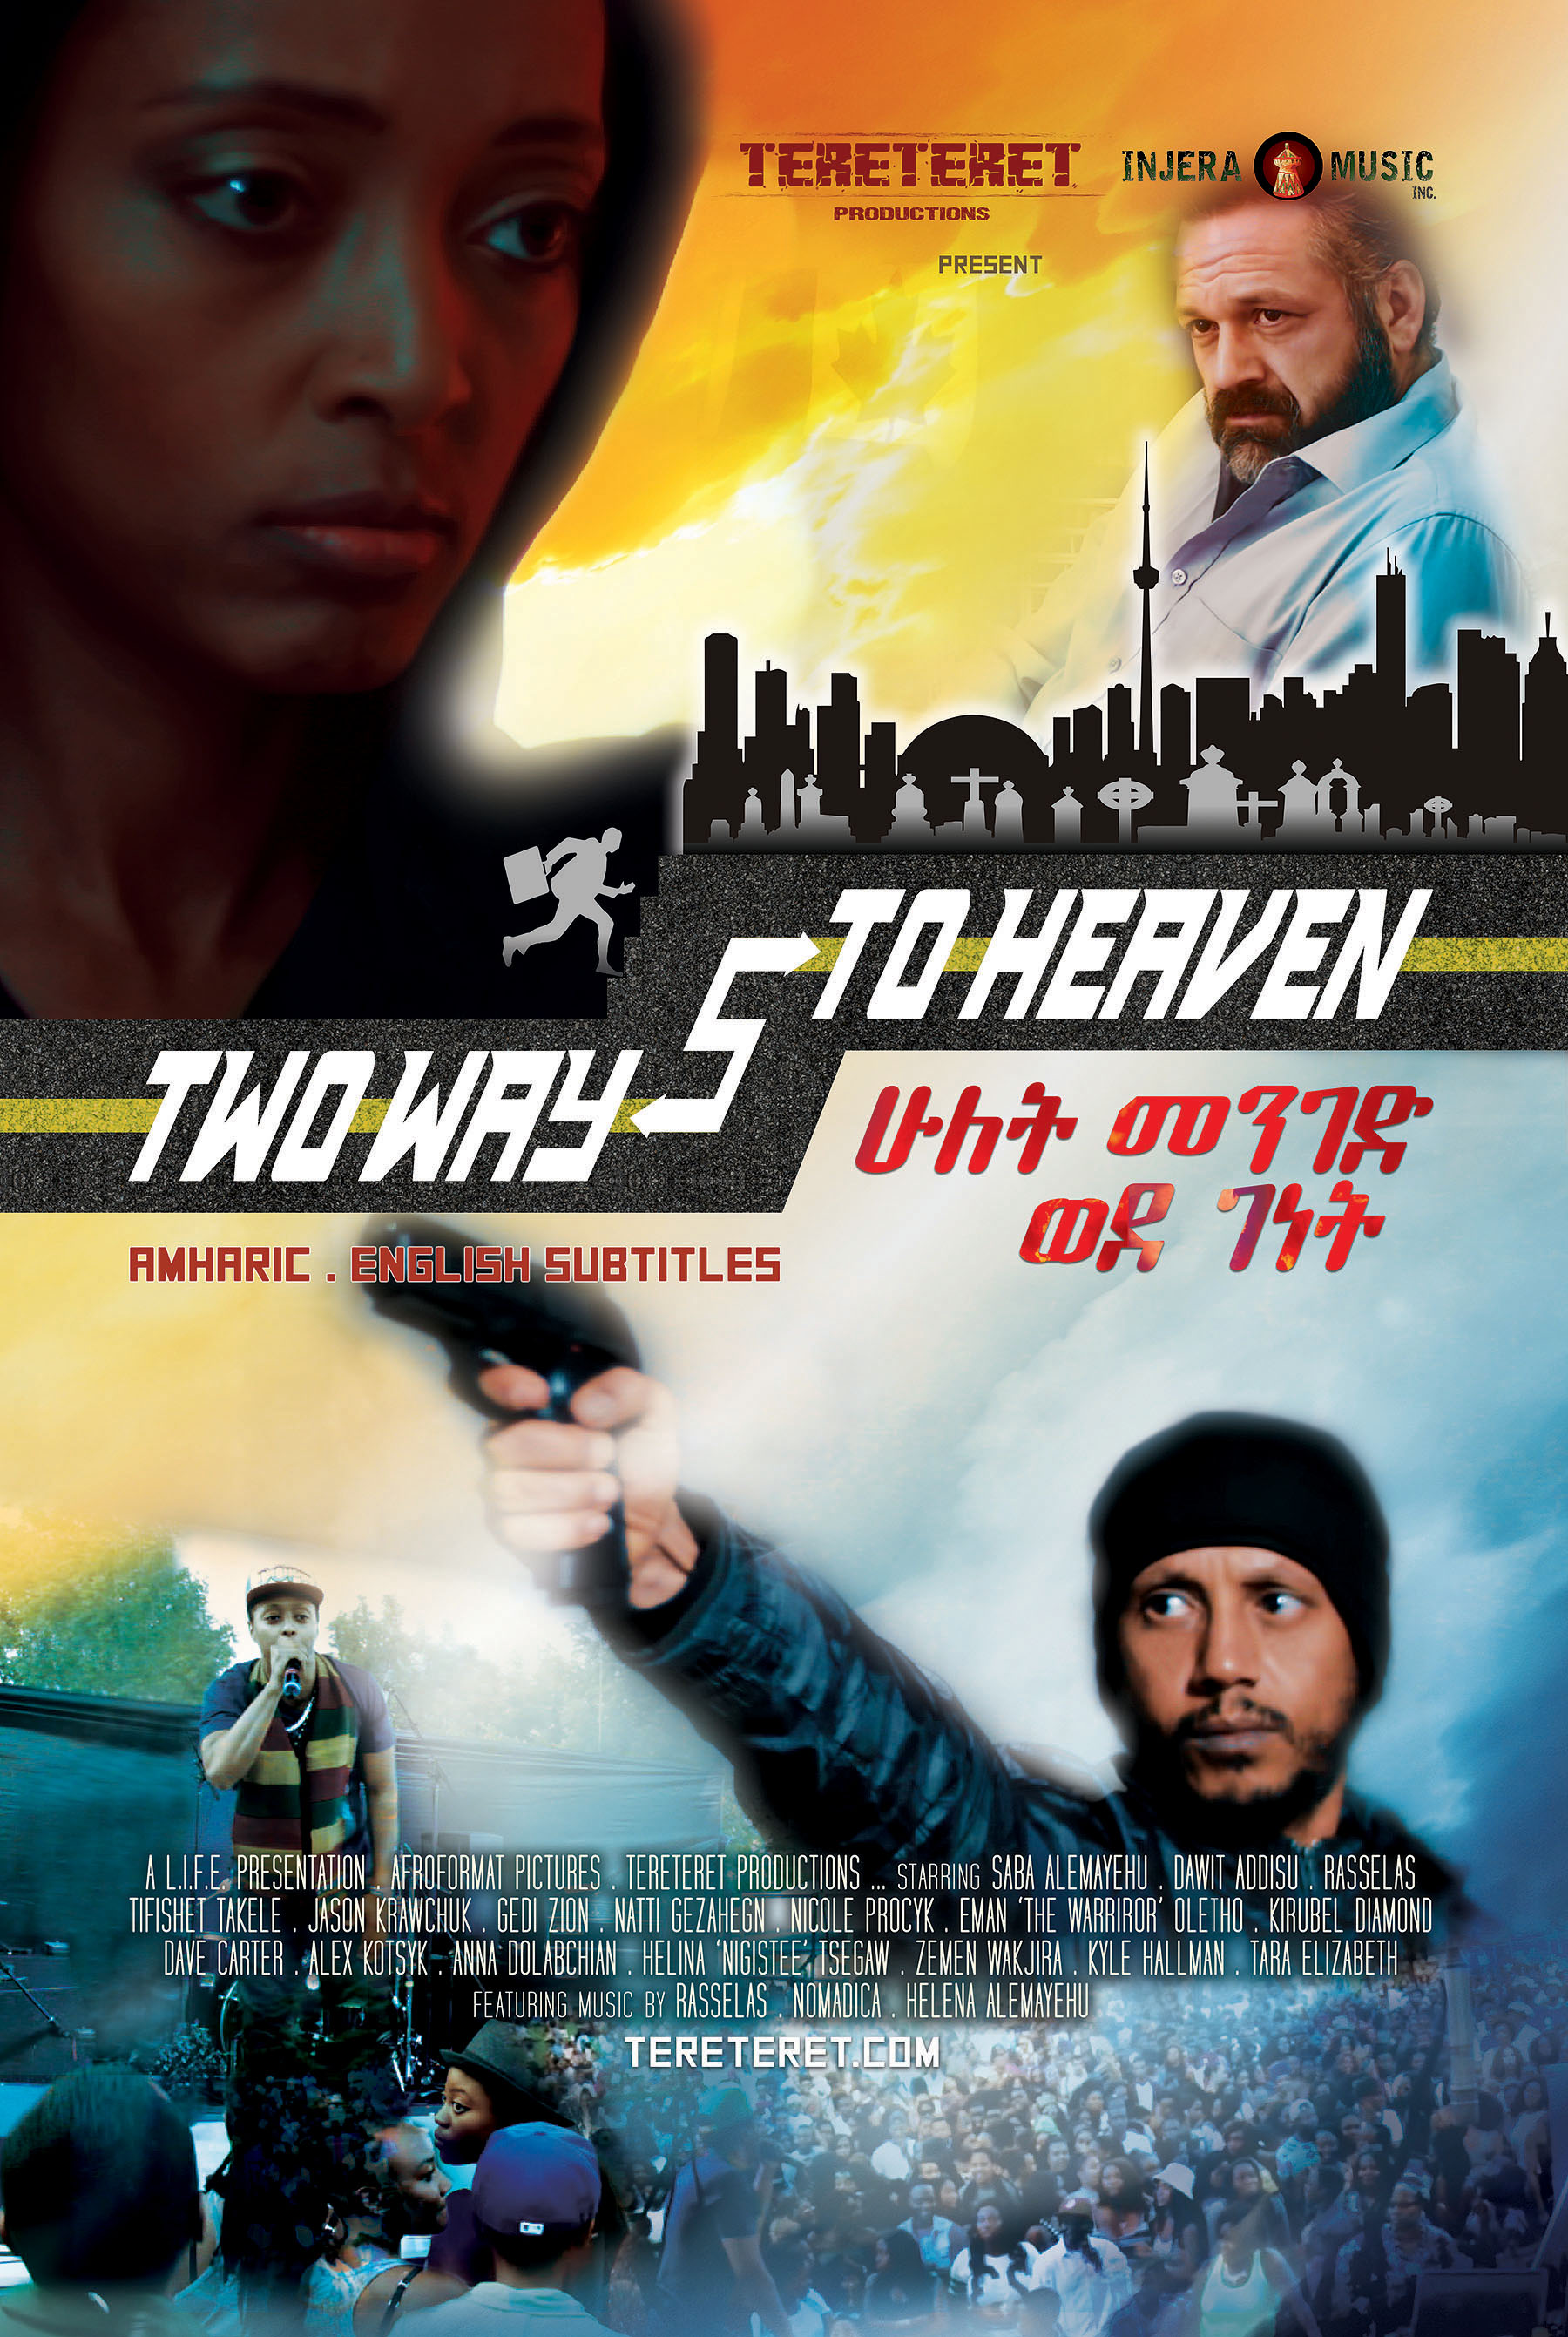 two ways to heaven tereteret productions teret screening movie film ethiopian canadian toronto canada ethiopia saba sabina sabasabina dawit addisu rasselas rawmny wildcat actor actress celebrity ኢትዮጵያ ሁለት መንገድ ወደ ገነት ሳባ ሳቢና ዳዊት አዲሱ ራሴላስ ፊልም ተረትተረት ተረት poster